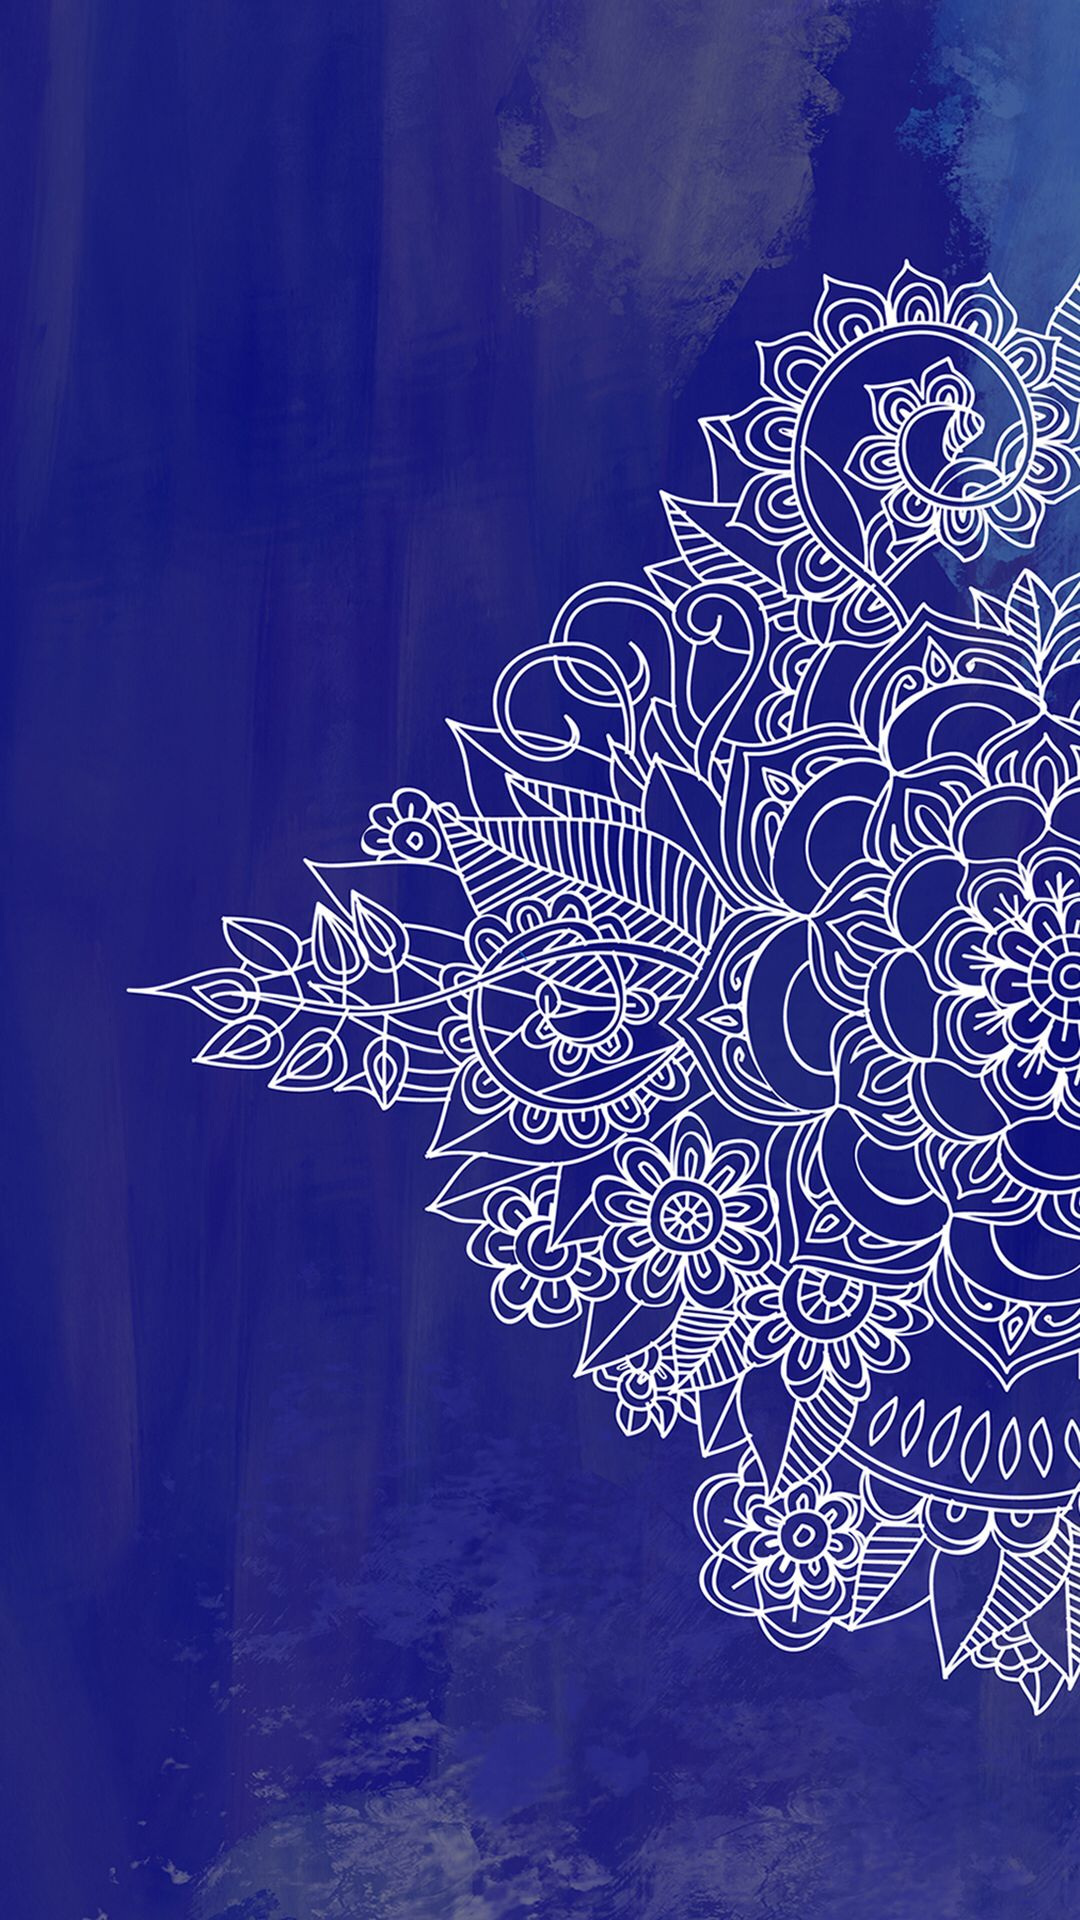 Pin by Shelby on wallpaper Wallpaper backgrounds, Blue